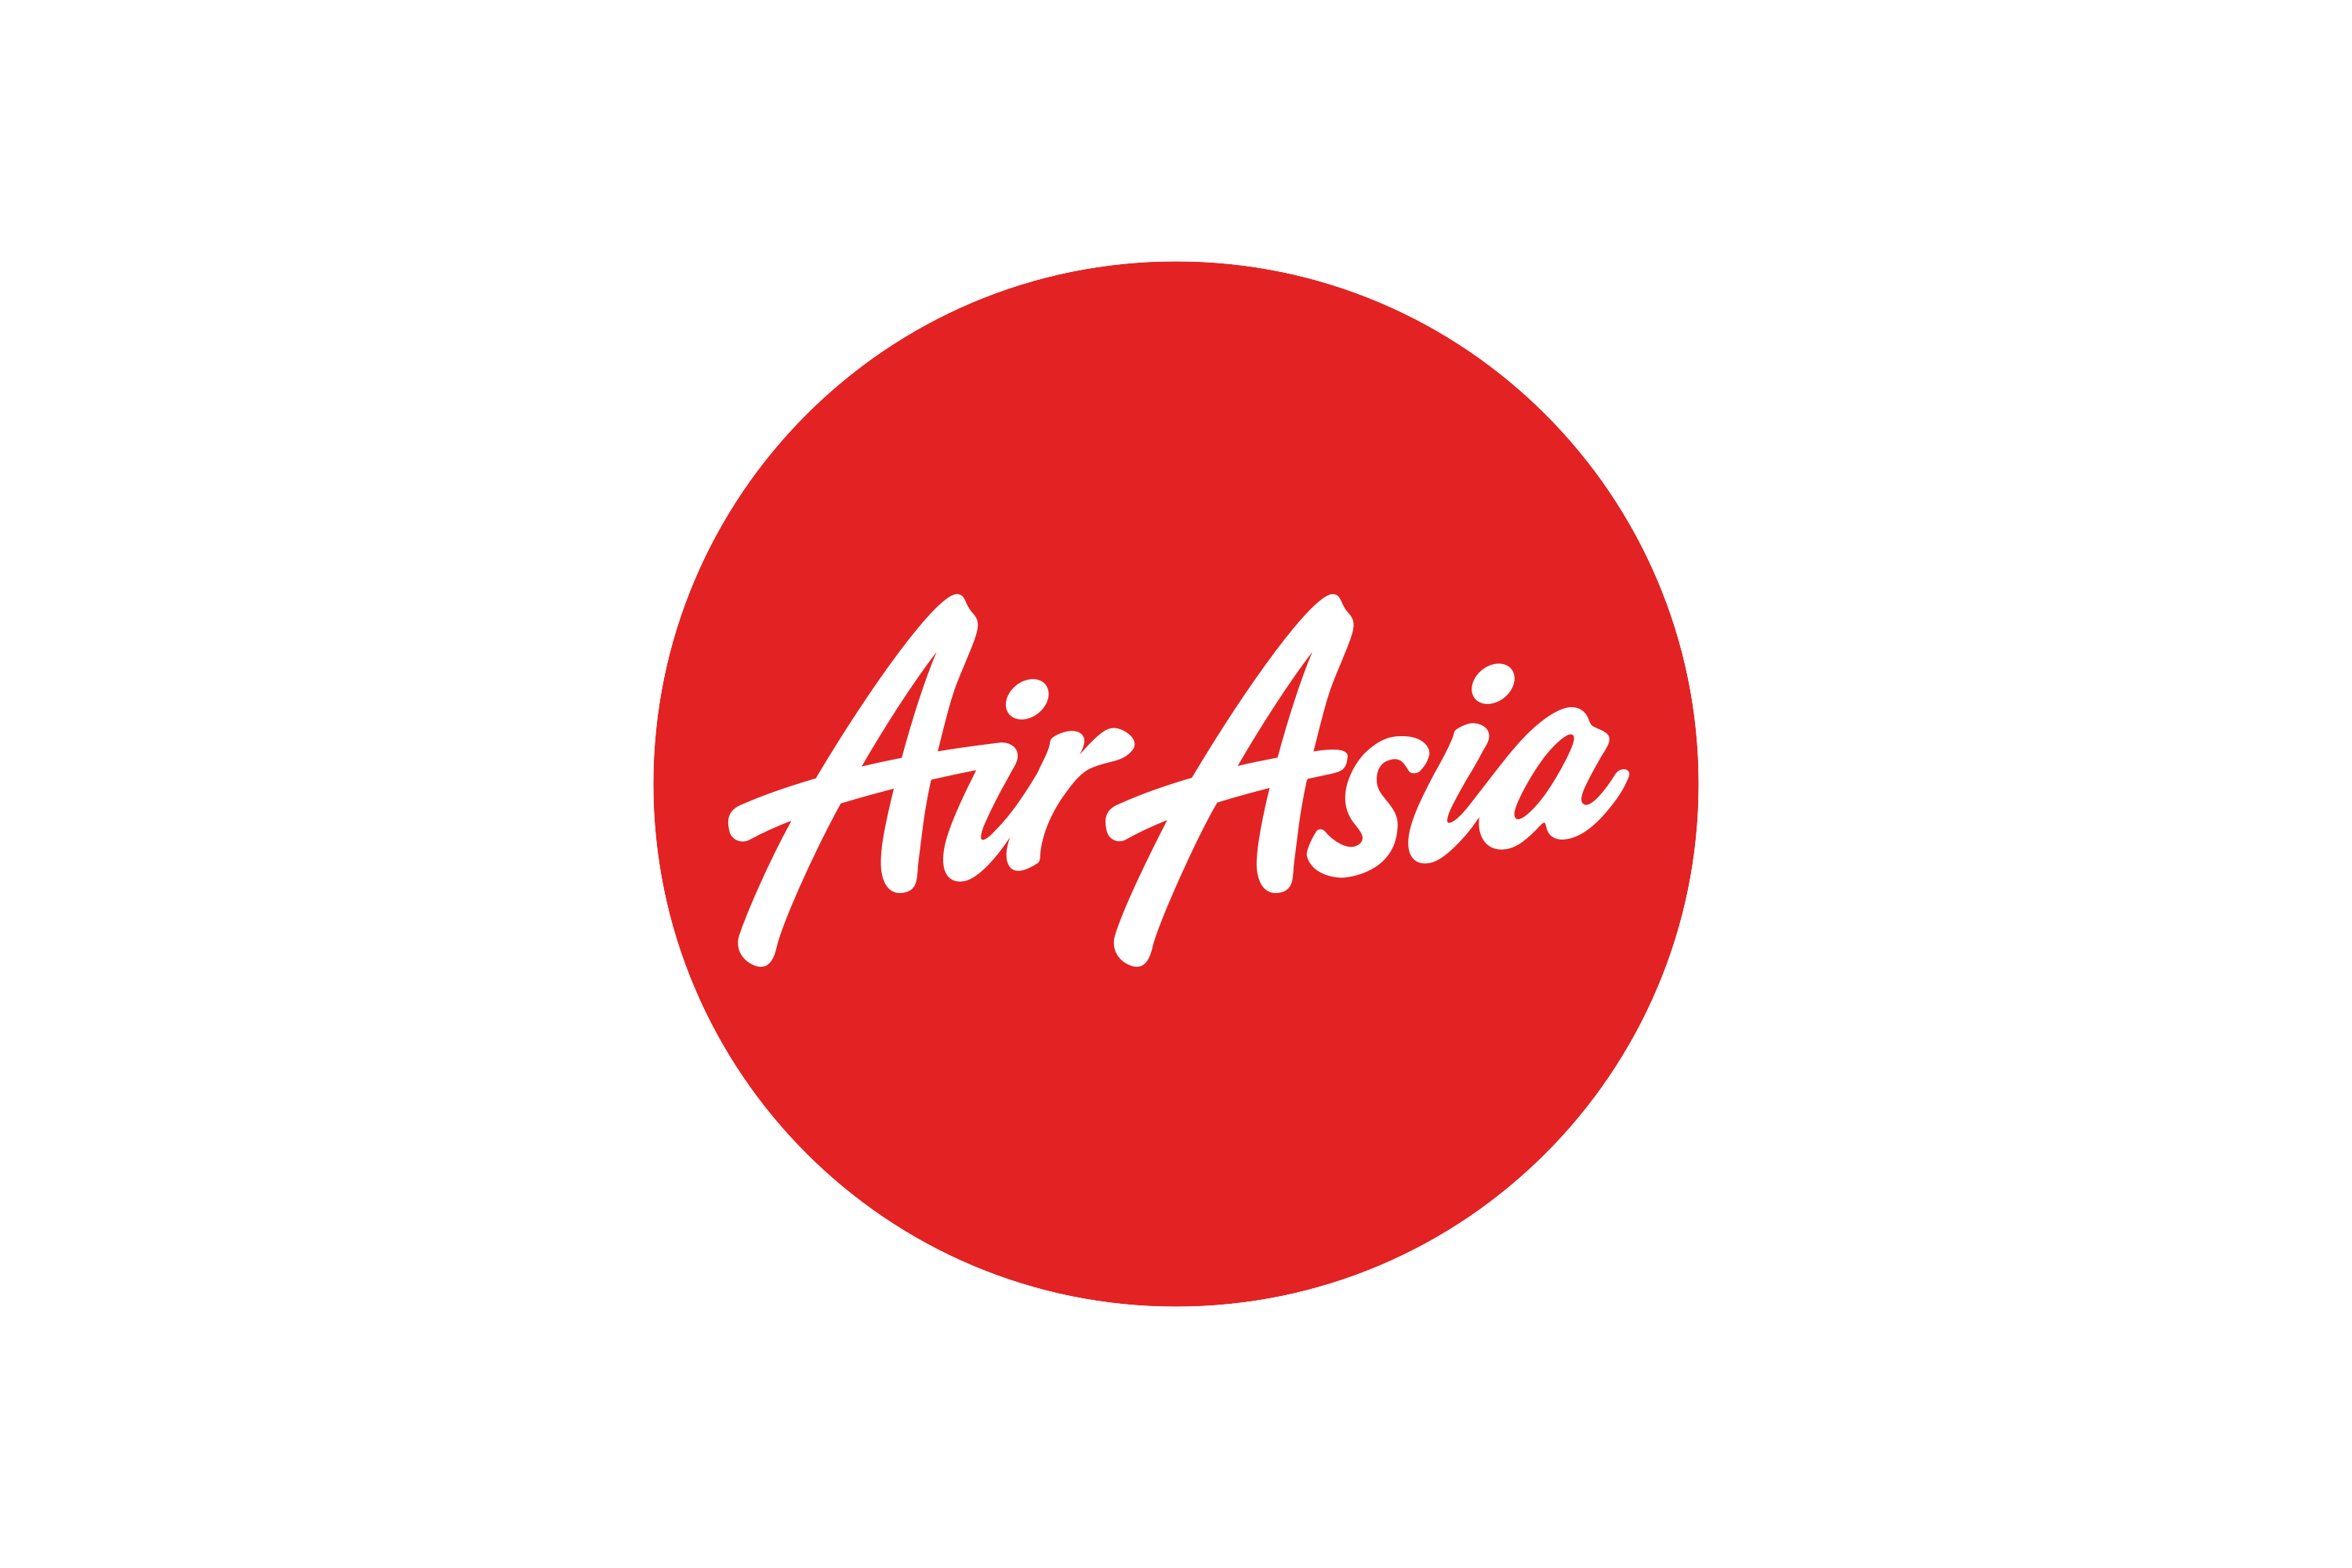 Download Airasia Japan Logo In Svg Vector Or Png File Format Logo Wine